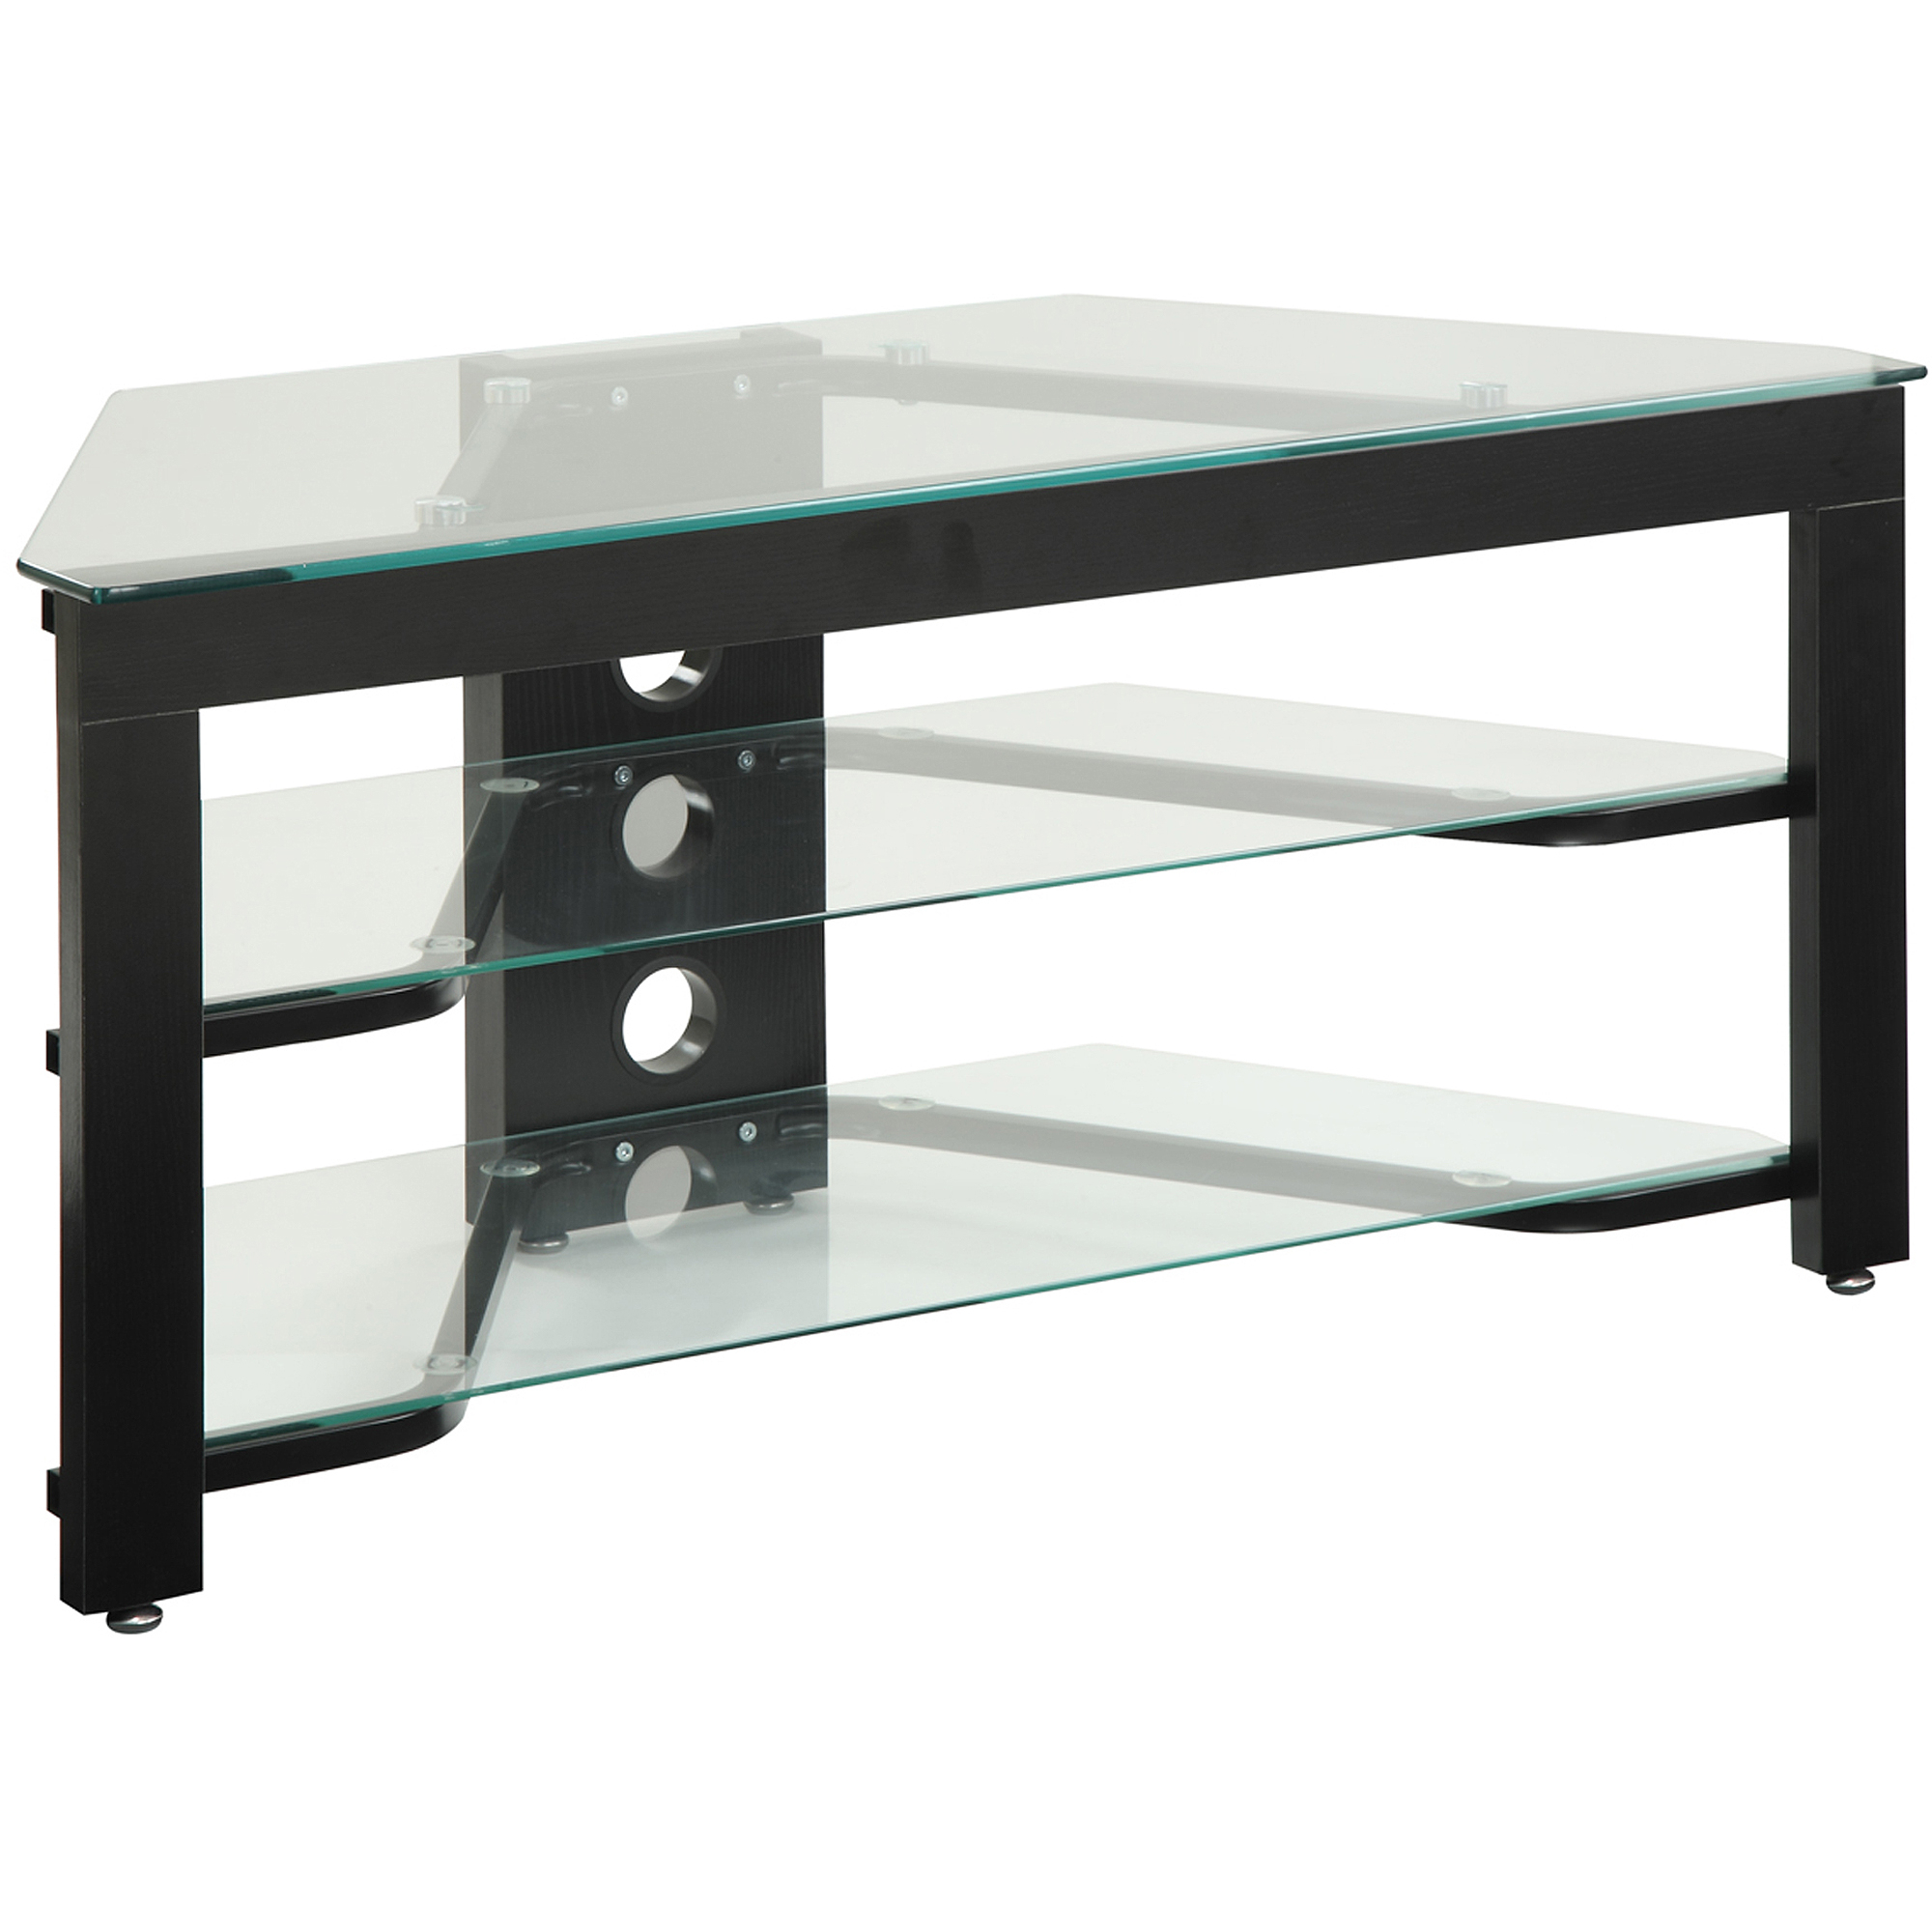 Silver Tv Stands For Well Liked Silver Tv Stand K&b Chrome Modern Gold And Glass Corner With Media (View 14 of 20)